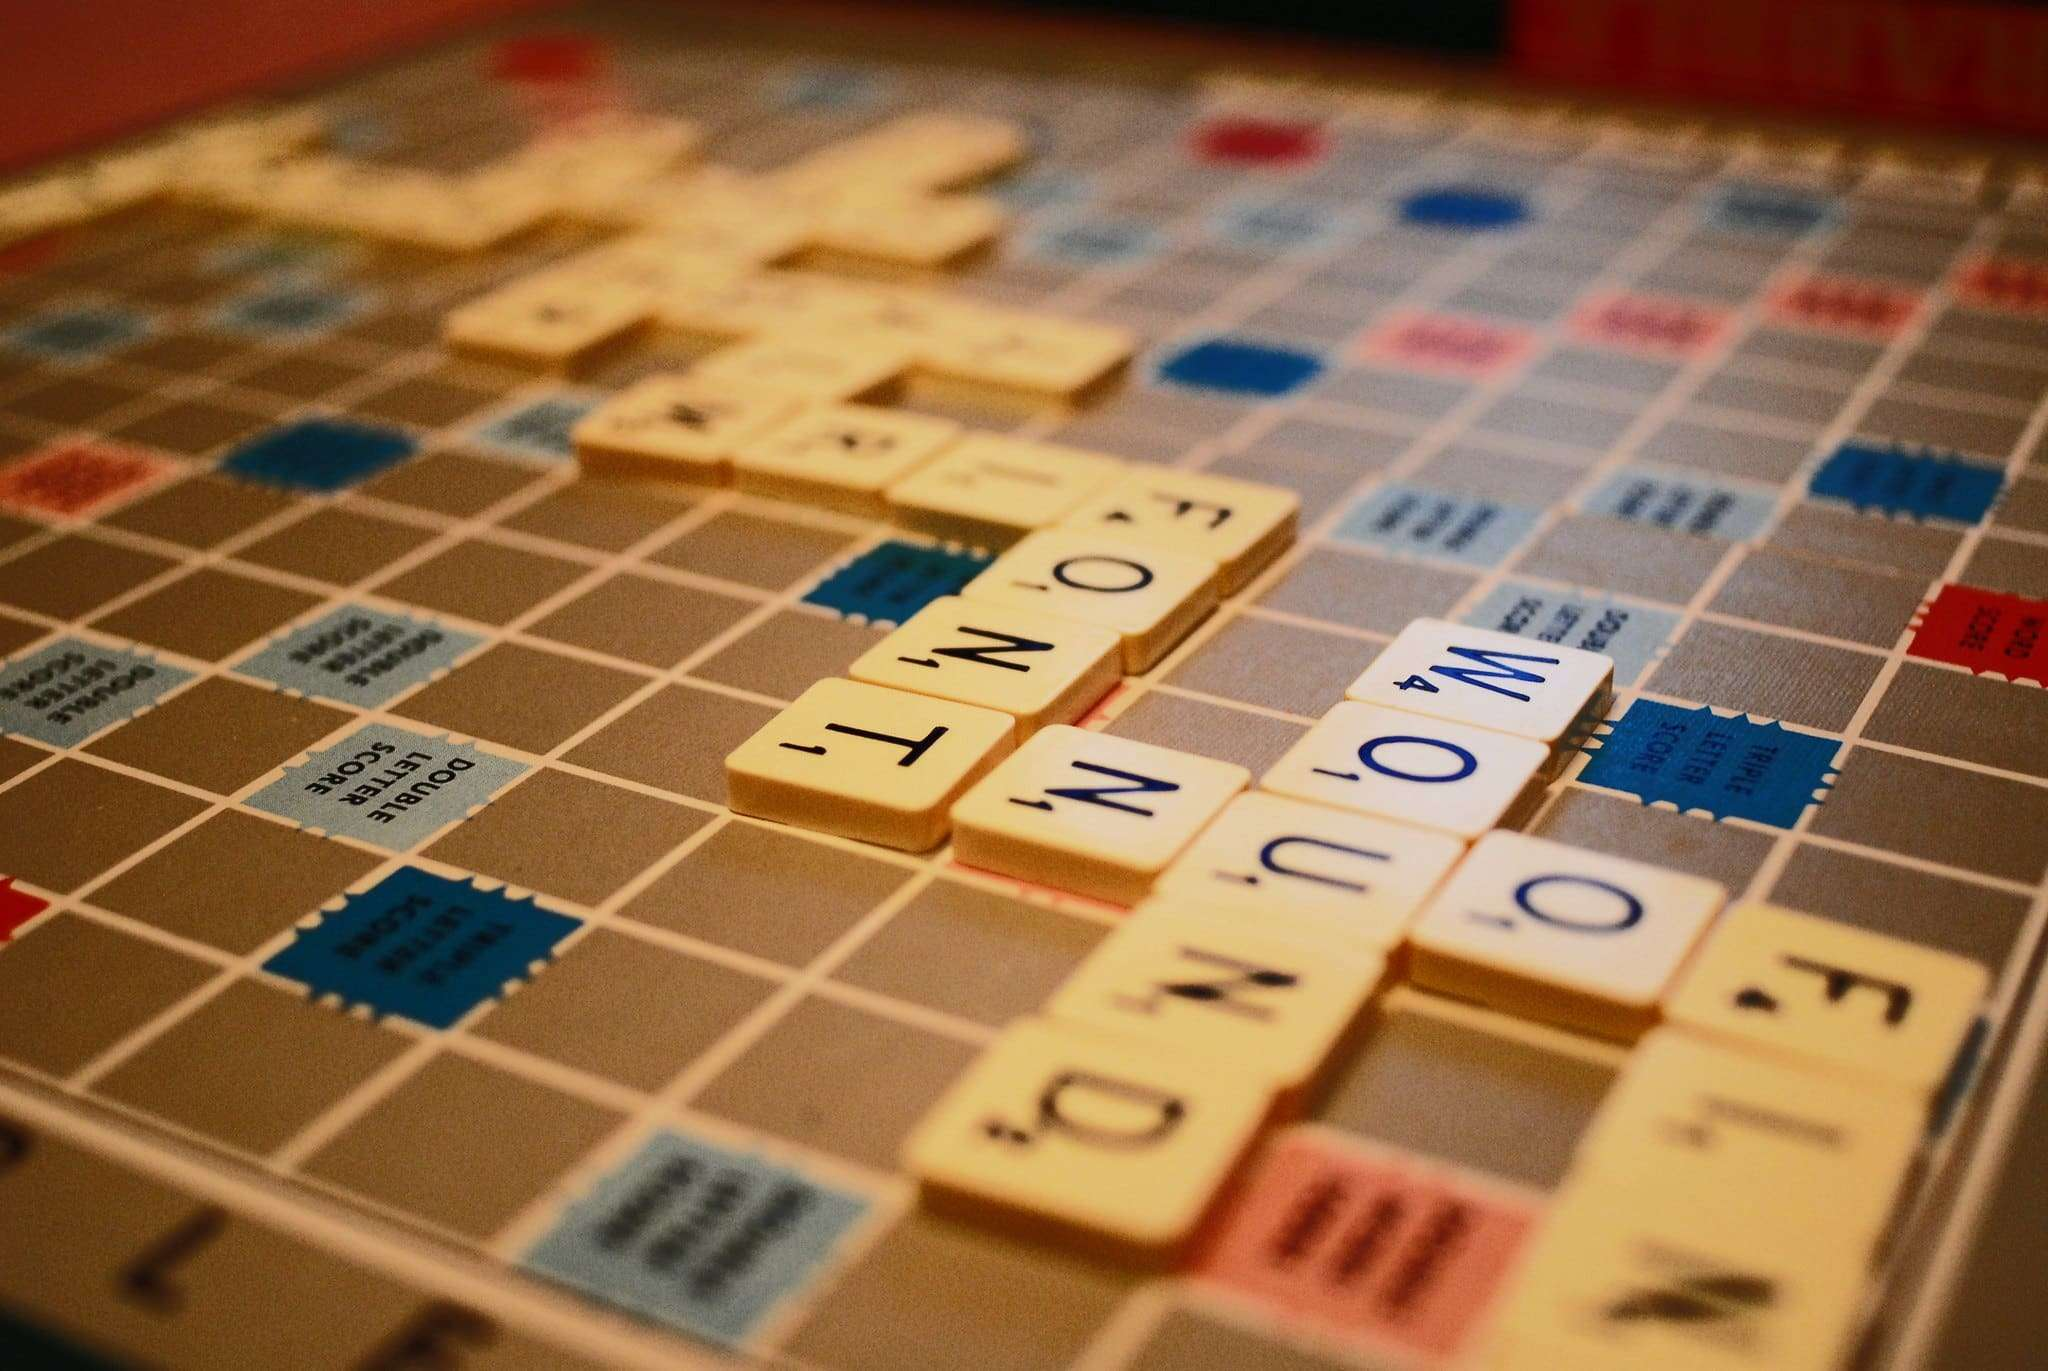 Online Scrabble with Oolong - Photo of scrabble board